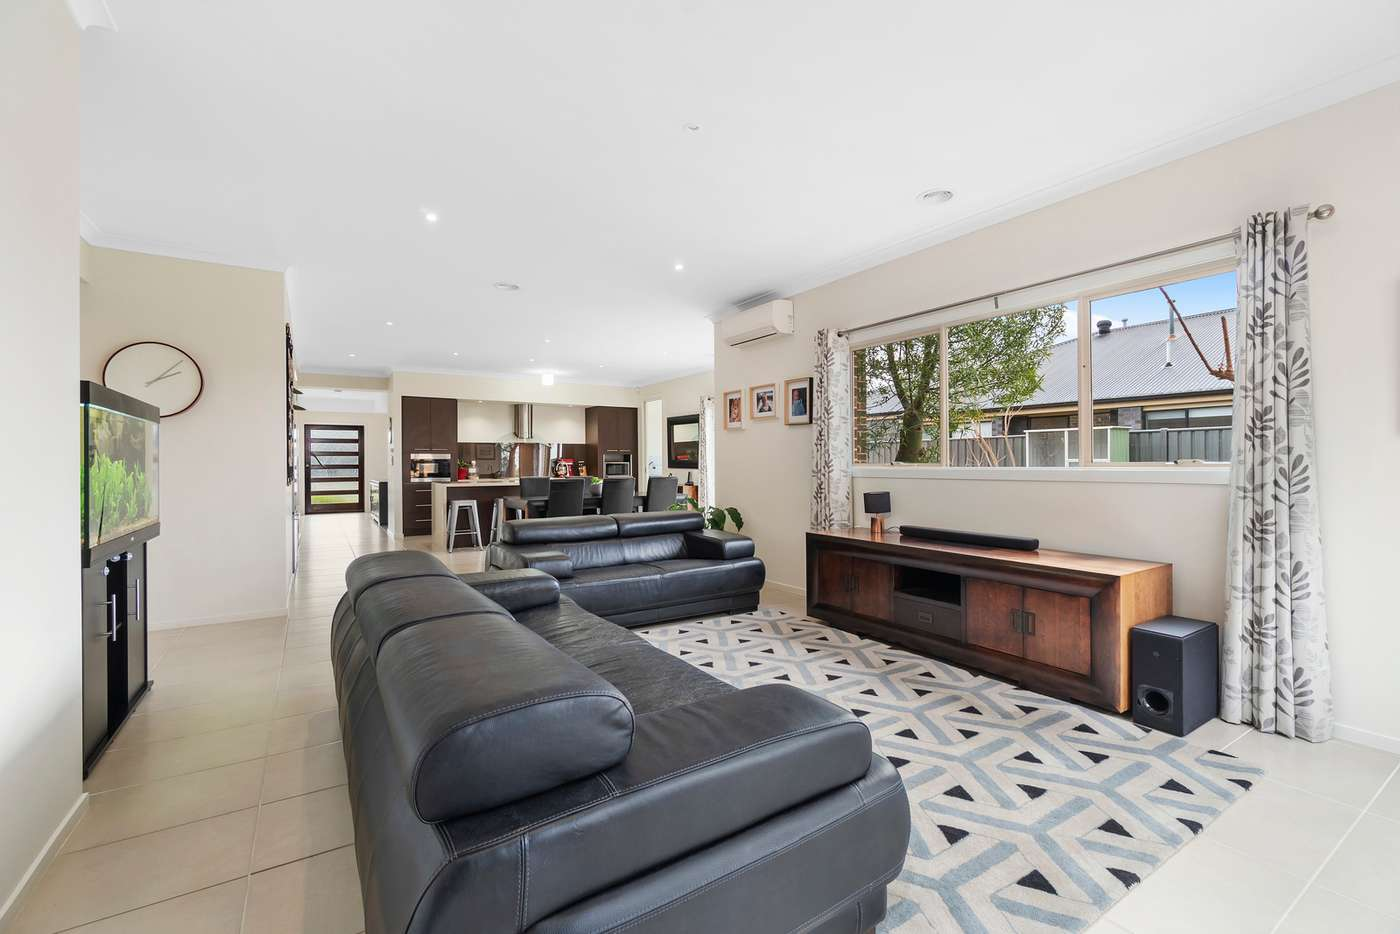 Fifth view of Homely house listing, 19 Thornley Court, Sale VIC 3850